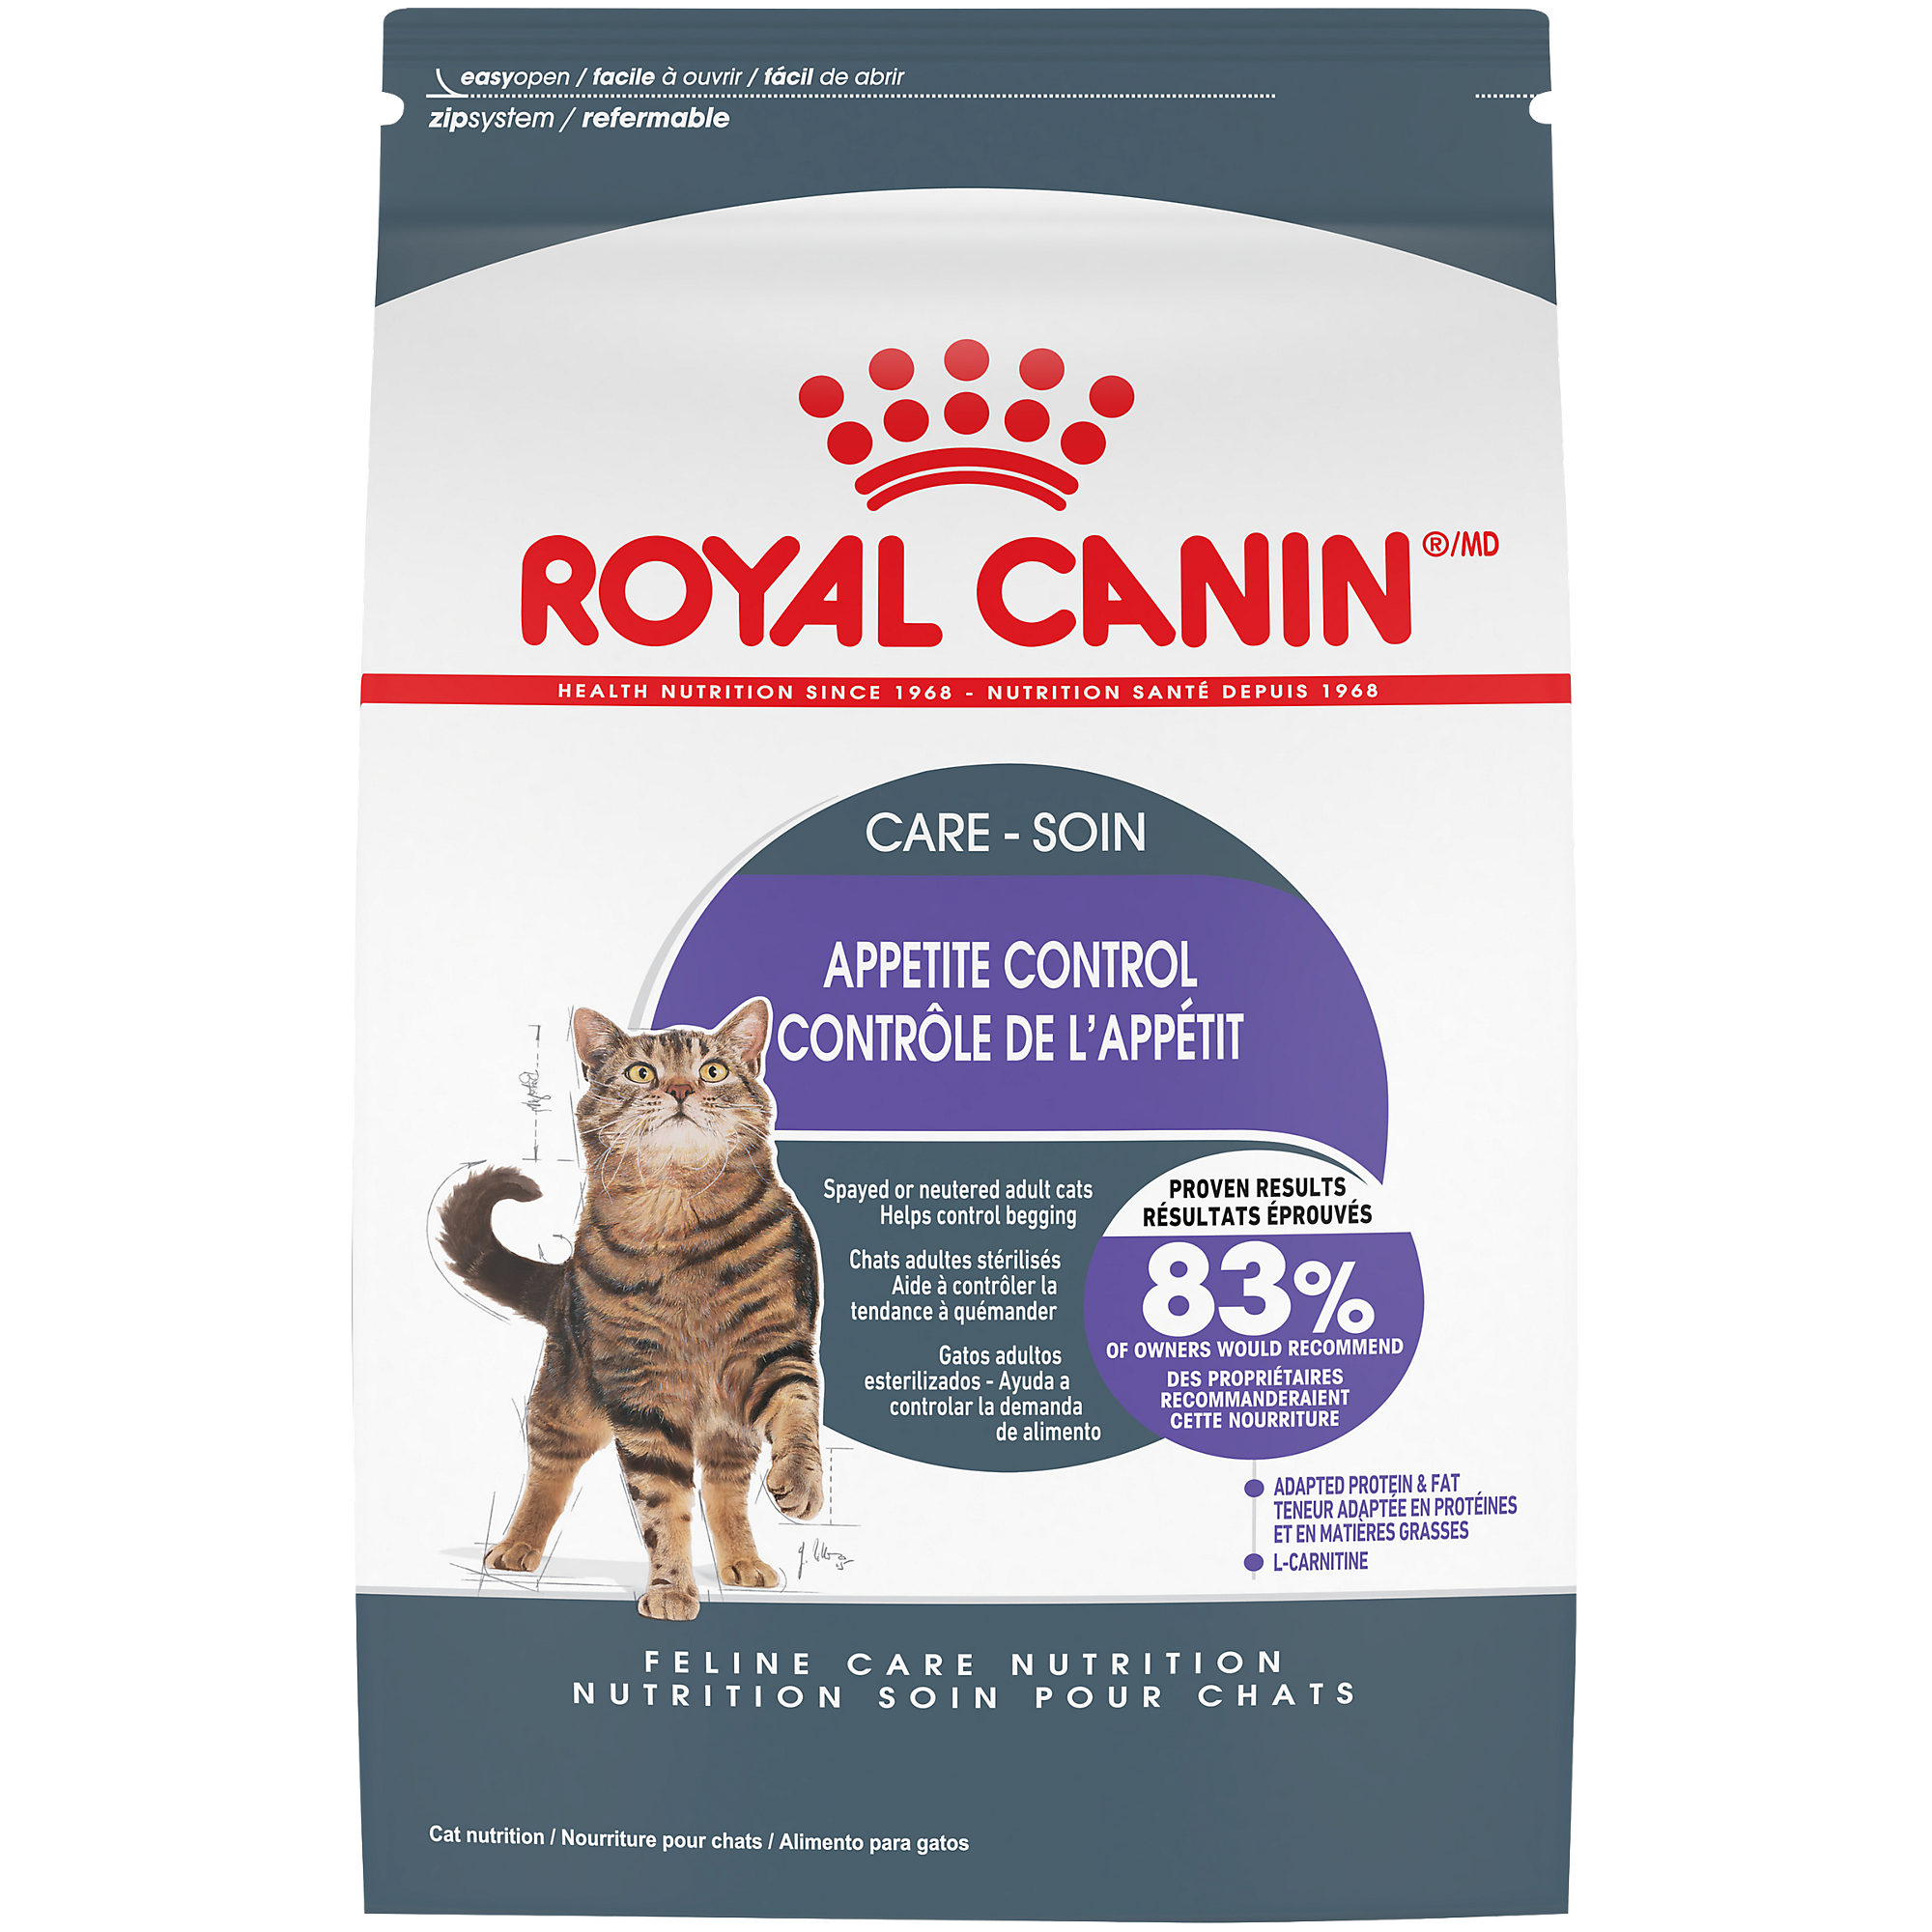 Royal Canin FHN Appetite Control Spayed Neutered Adult Dry Cat Food Image